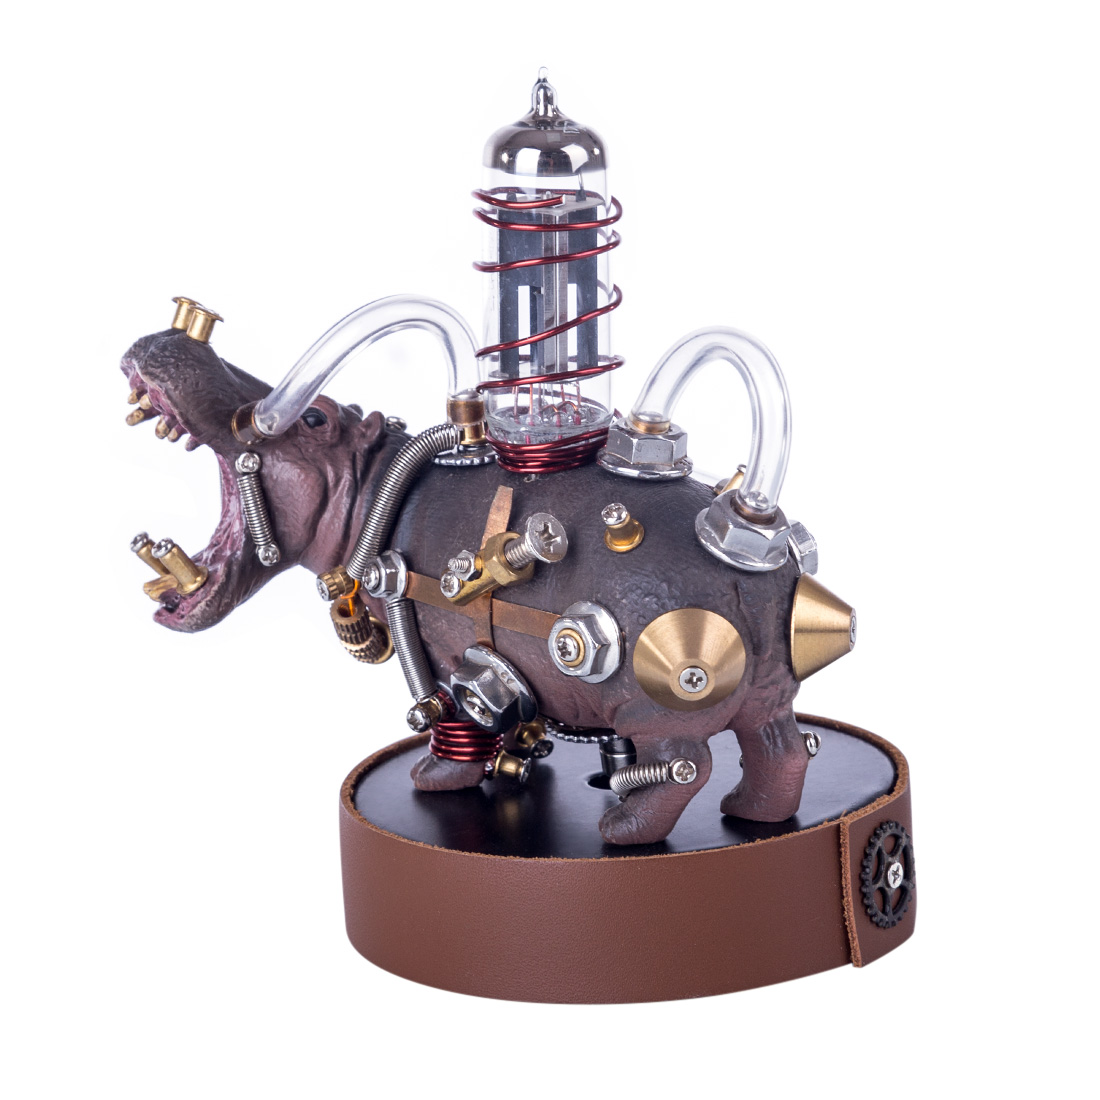 Mechanical Hippo 3D Puzzle 105Pcs DIY Metal Variant Beast Assembly Model Kit